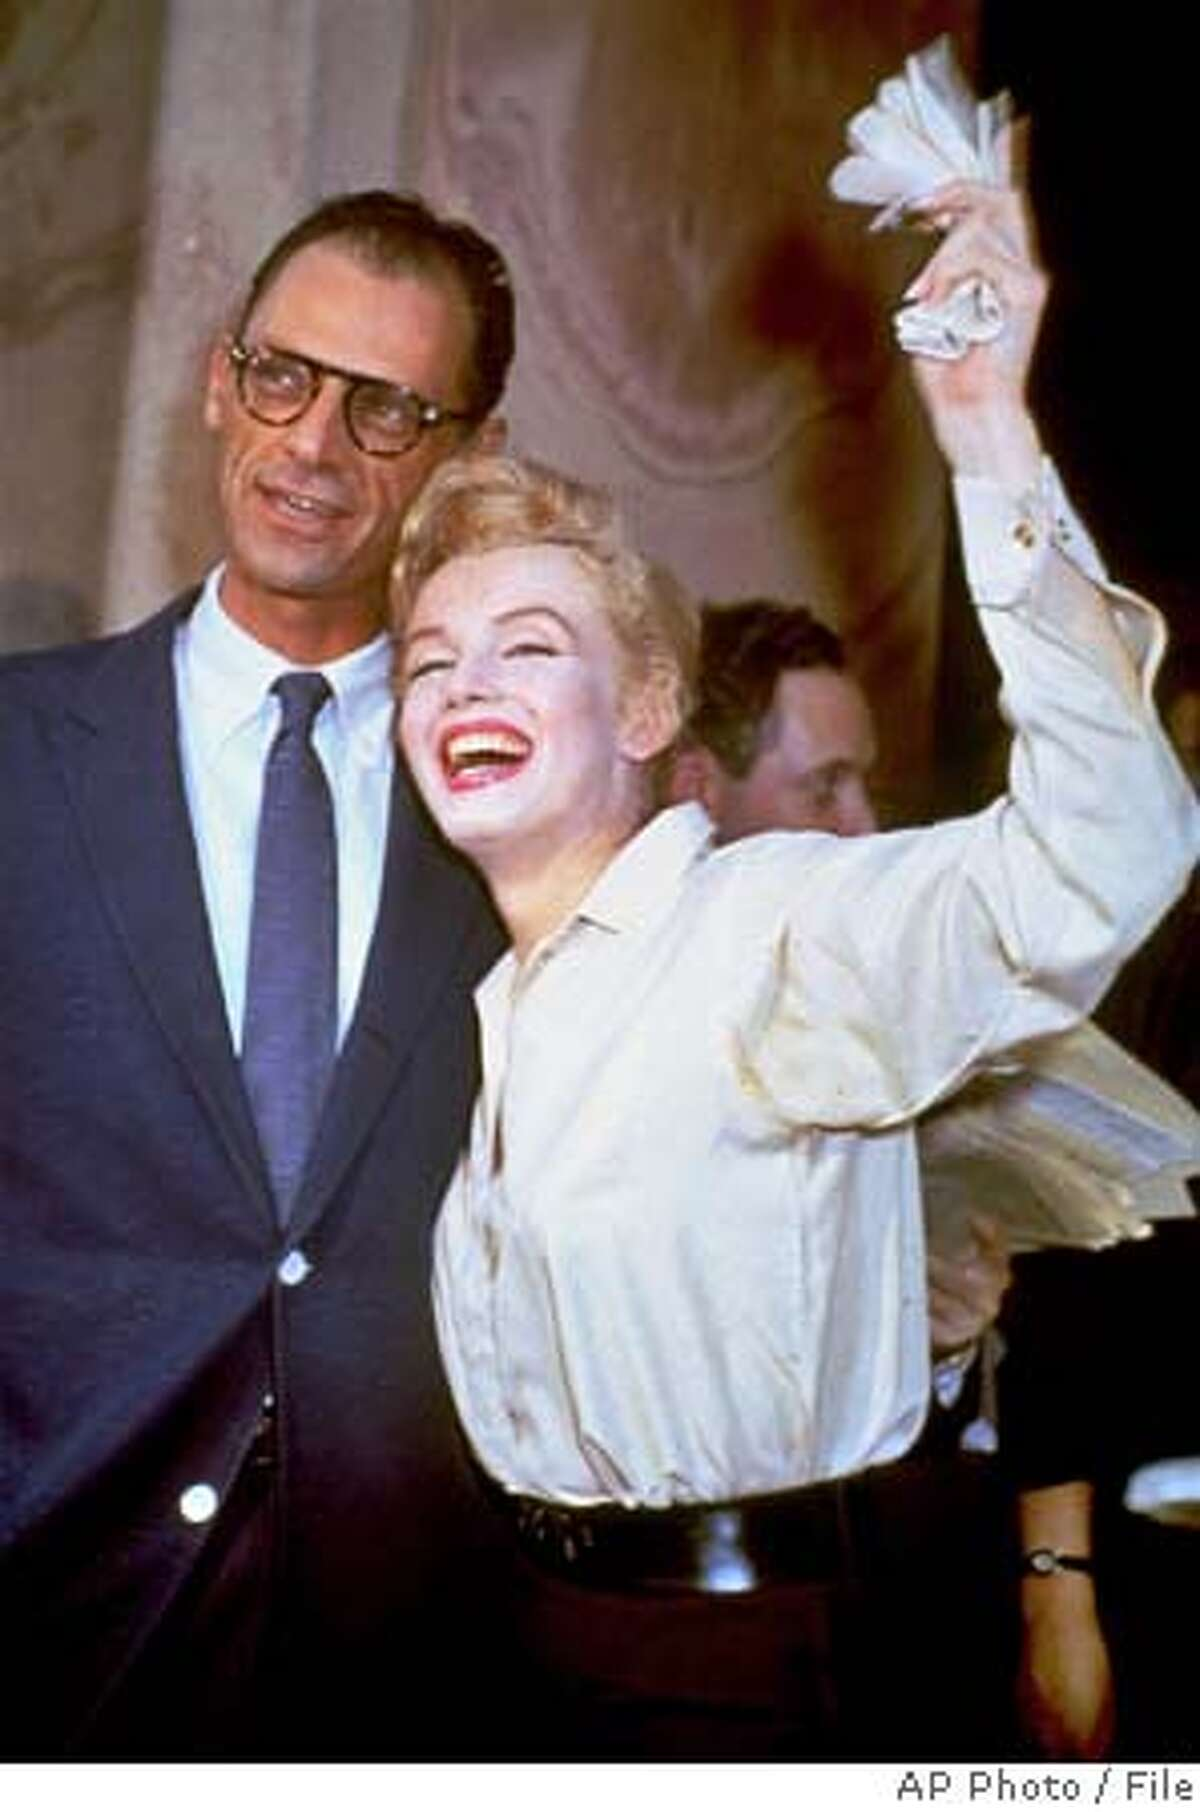 **FILE**Newlyweds Marilyn Monroe and Arthur Miller are shown after their civil wedding ceremony in White Plains, N.Y., on June 29, 1956. Miller, the Pulitzer prize-winning playwright whose most famous fictional creation, Willy Loman in